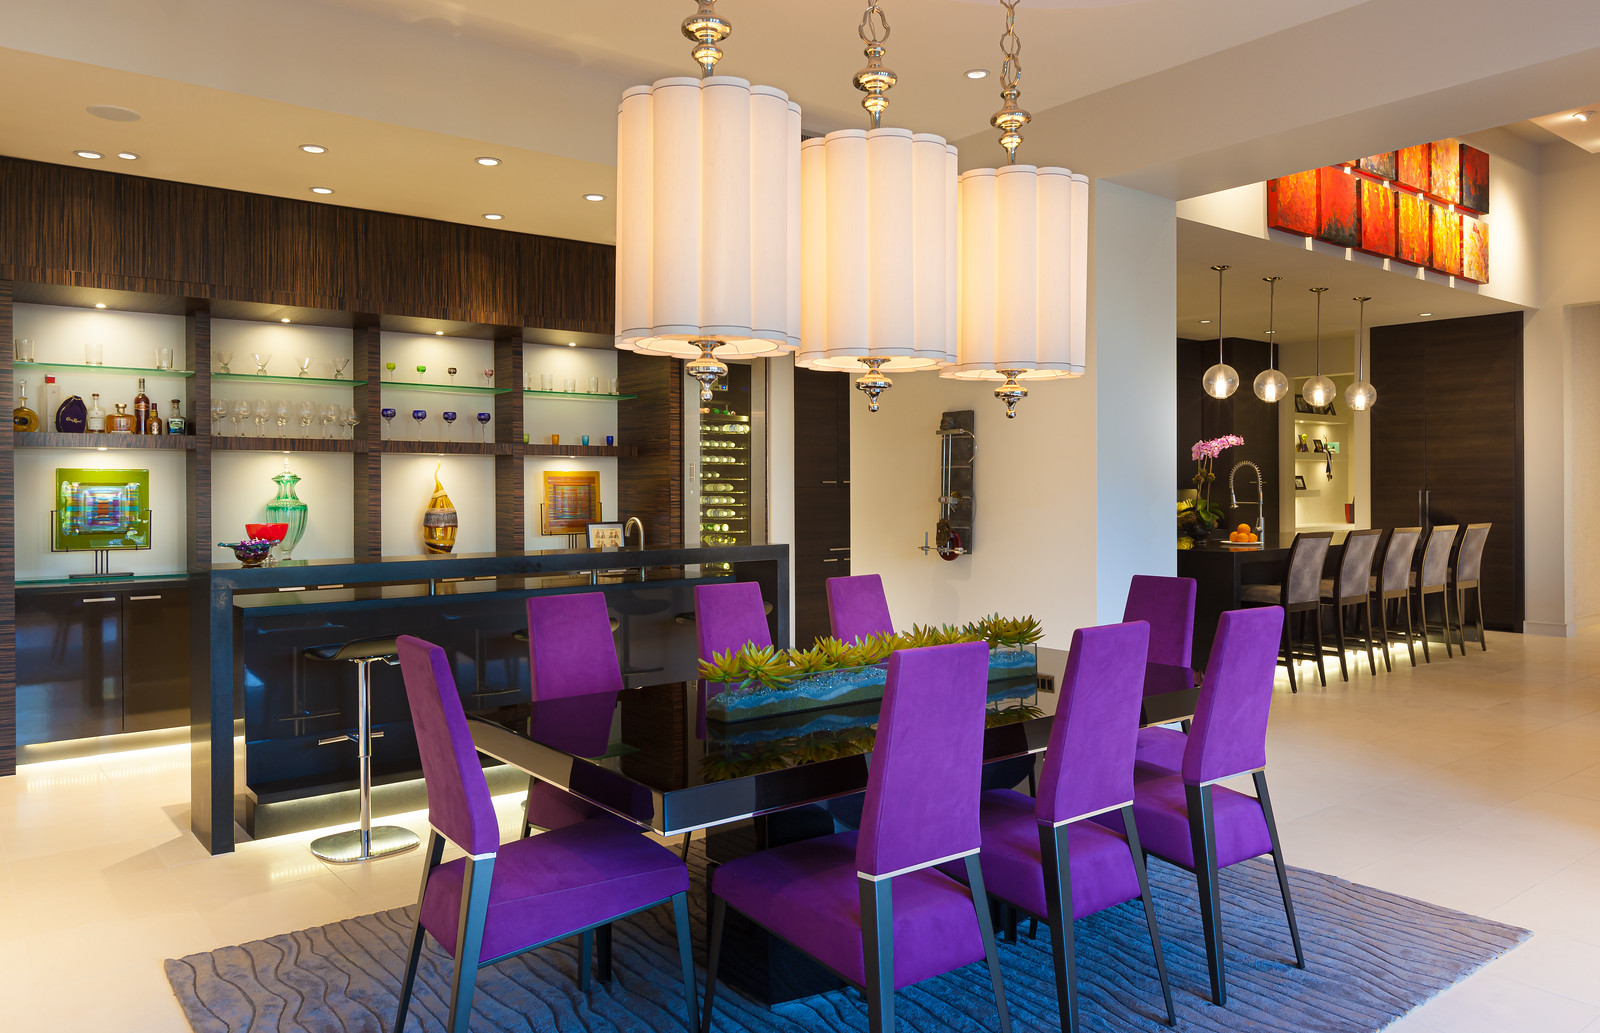 Colorful Dining Room with fuchsia colored dining chairs with 3 barrel pendants over the table.